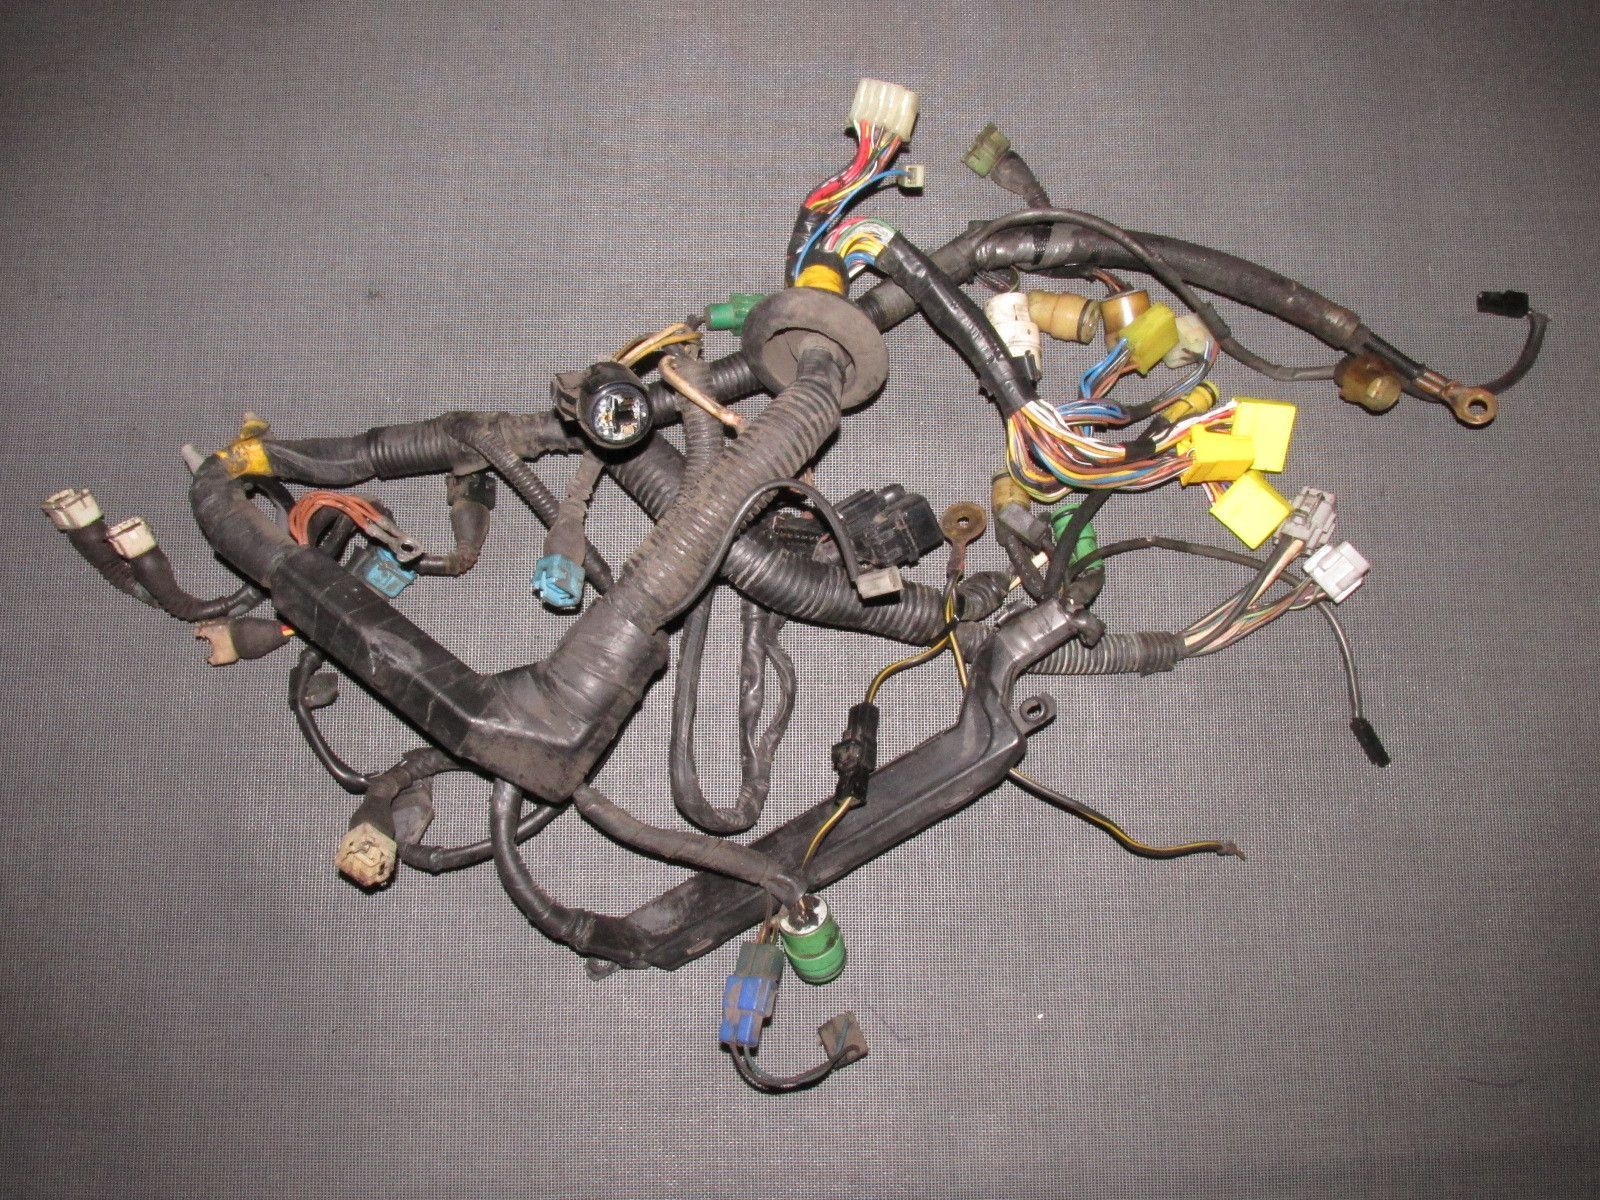 85 86 87 88 89 toyota mr2 oem 4age engine wiring harness toyota rh pinterest com k20 mr2 wiring harness k20 mr2 wiring harness